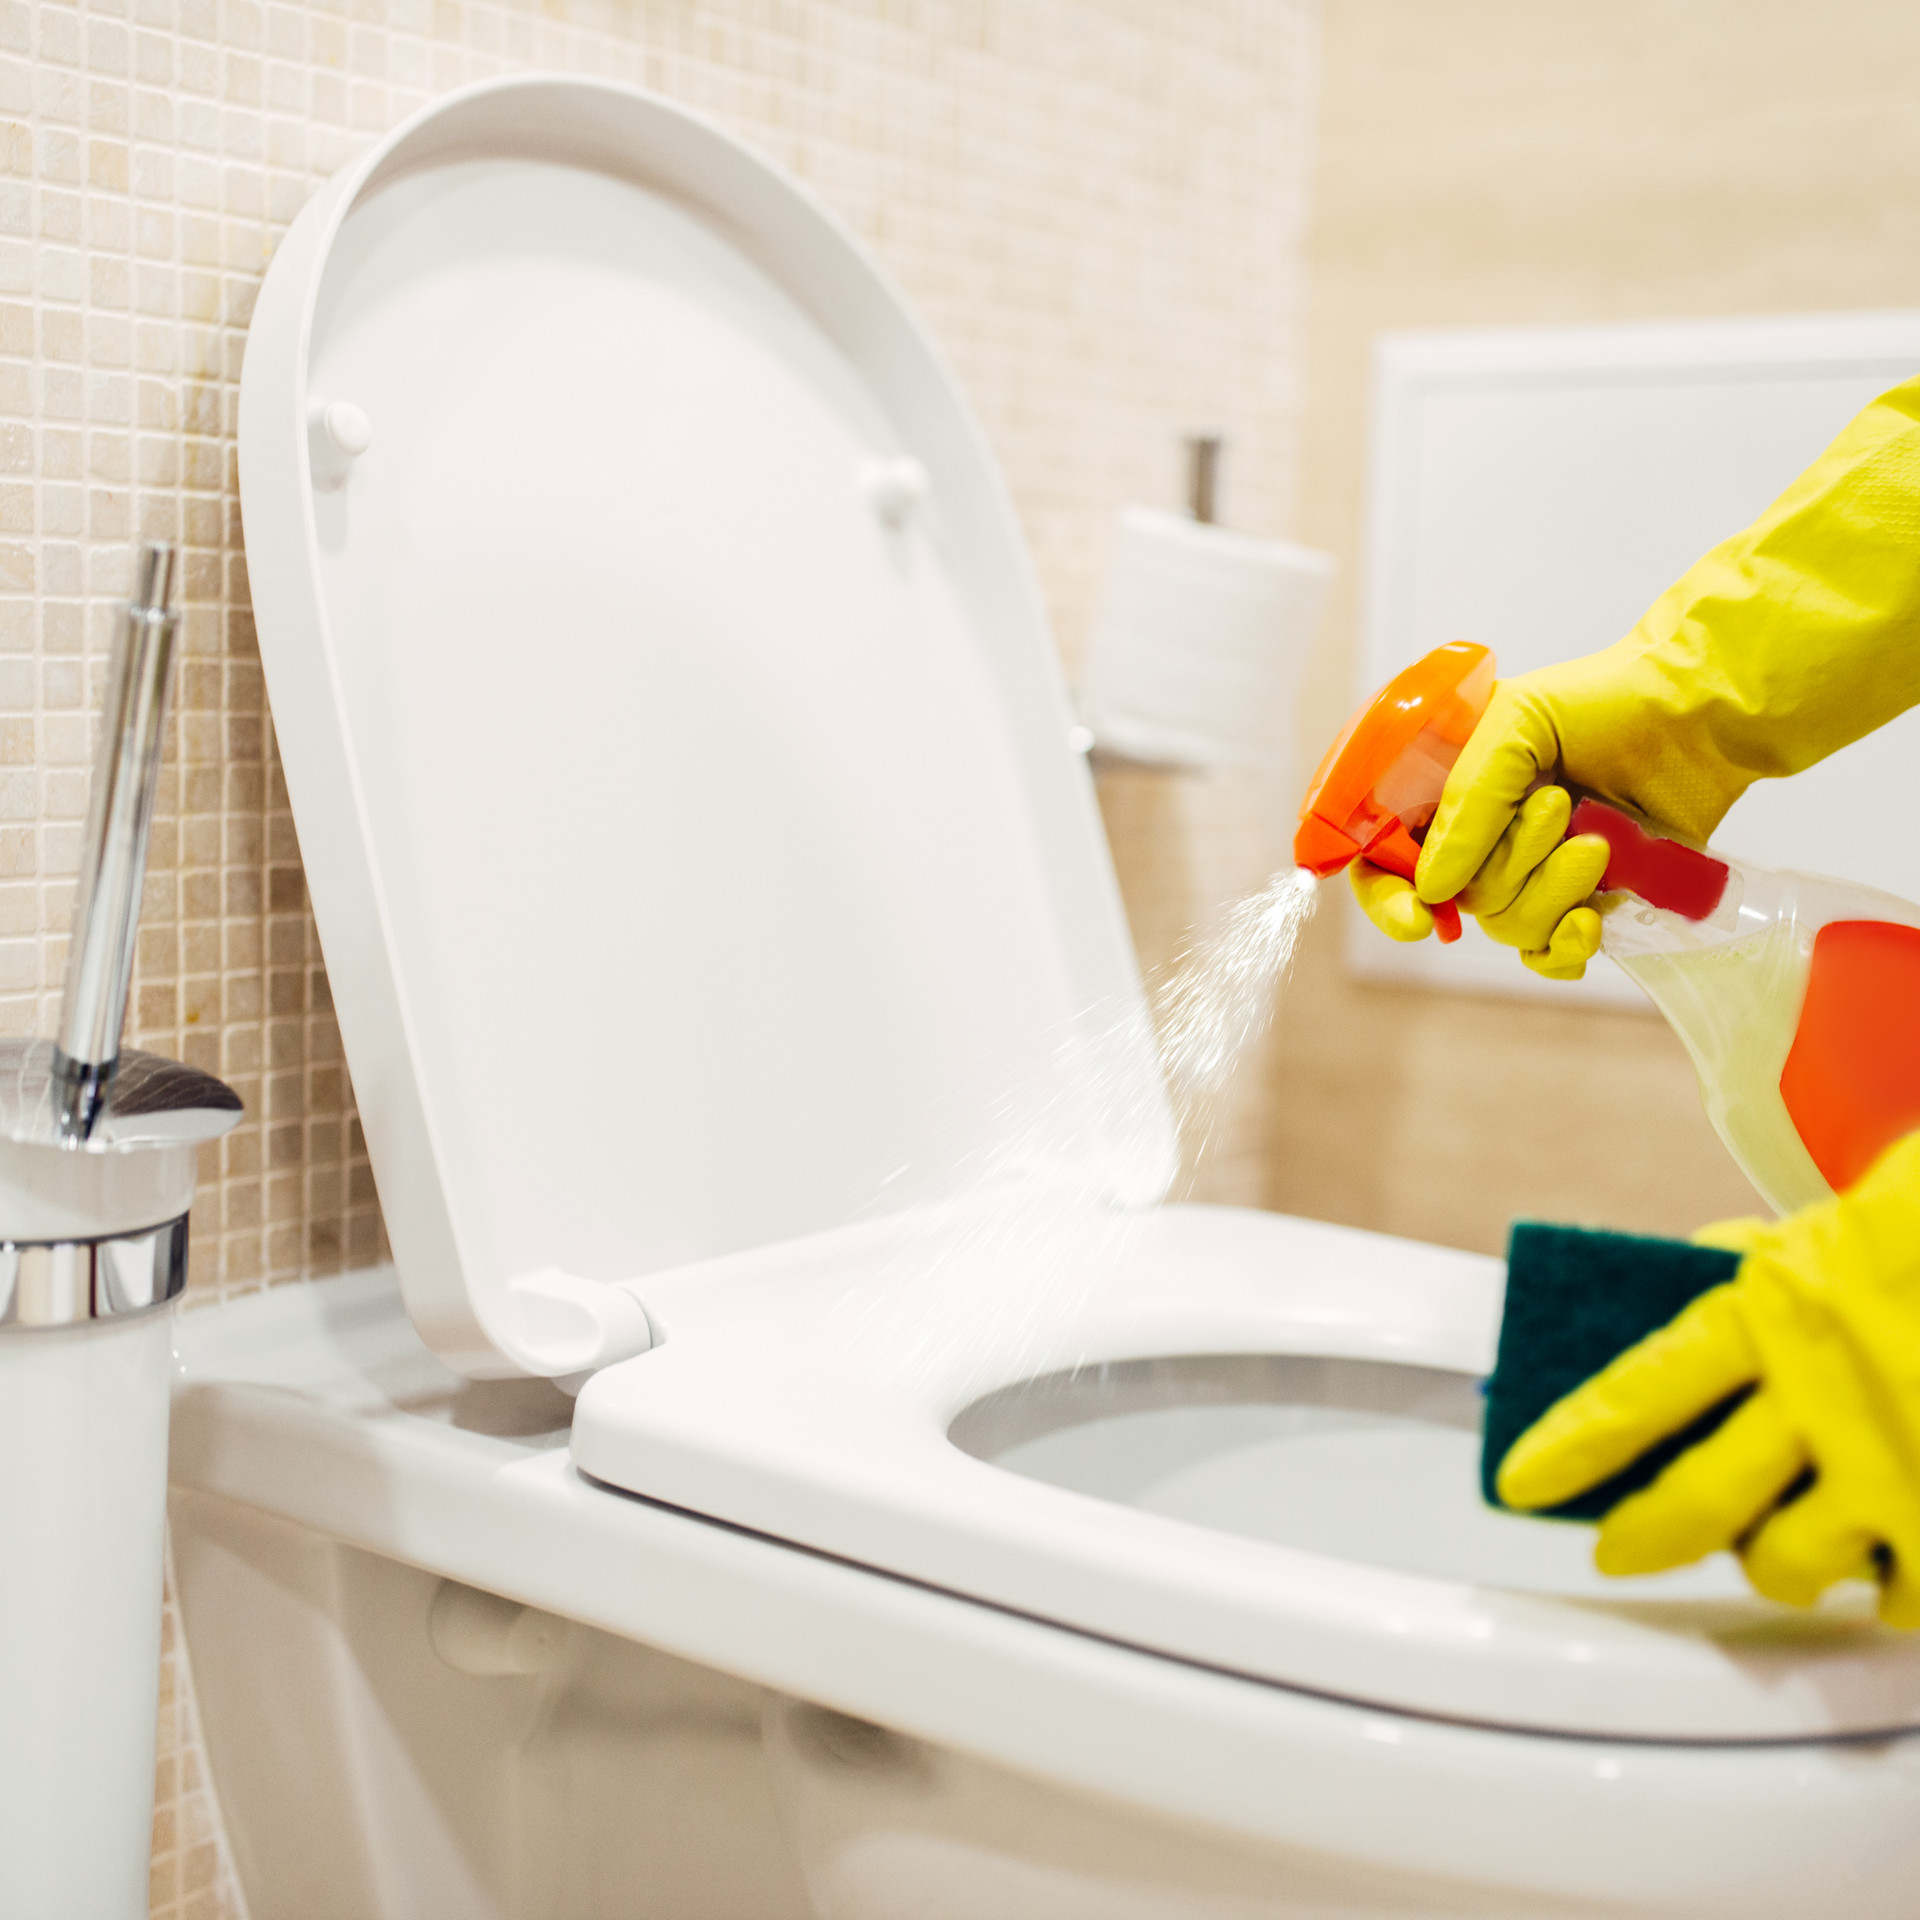 maid-cleans-the-bidet-with-a-cleaning-sp